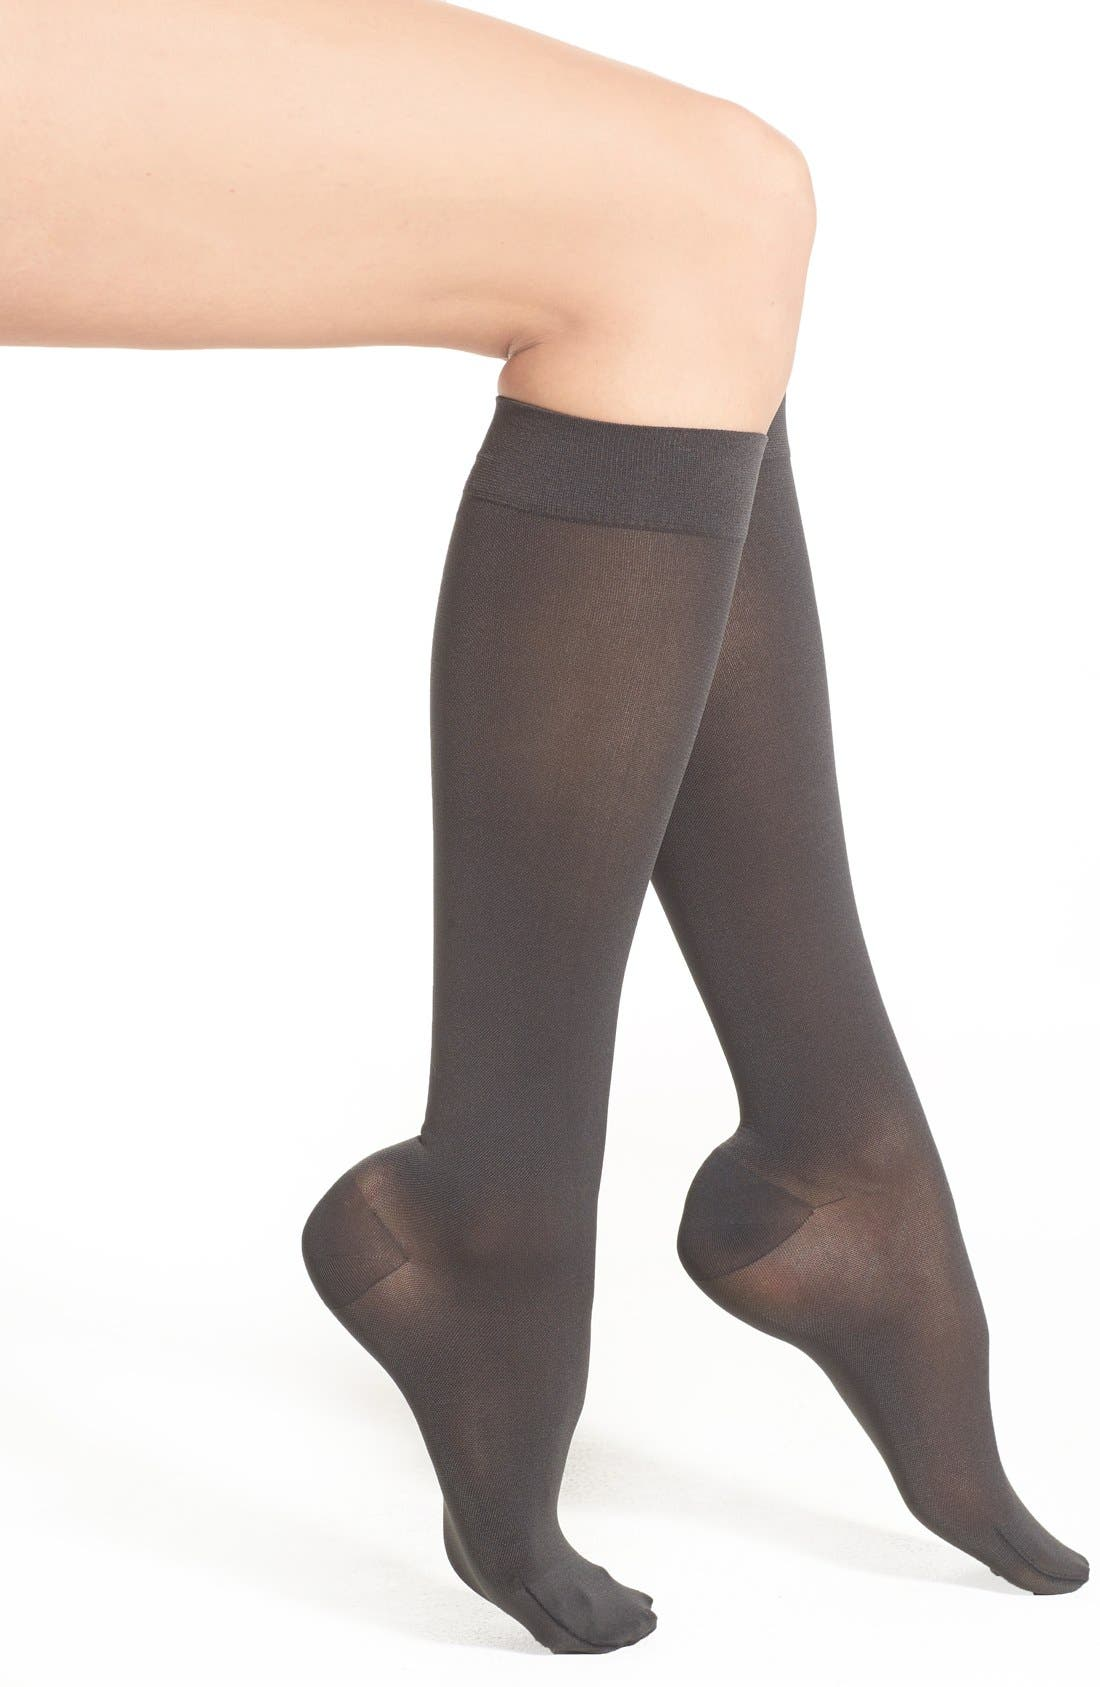 'Headliner' Compression Knee High Socks,                         Main,                         color, Graphite